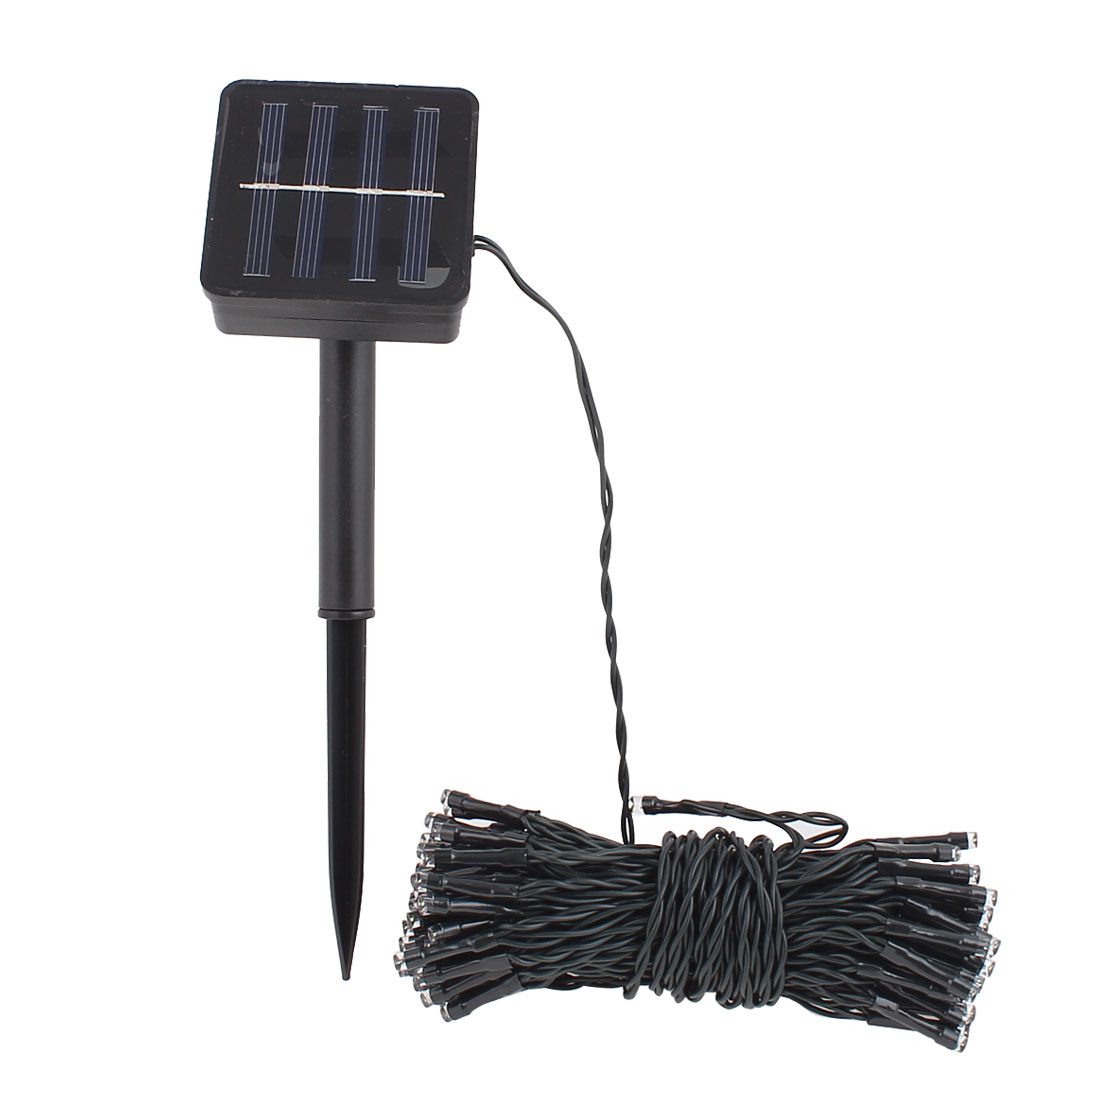 100 LED Multicolor Solar Power String Light Outdoor Garden Party Home Decor Lamp 12 Meters